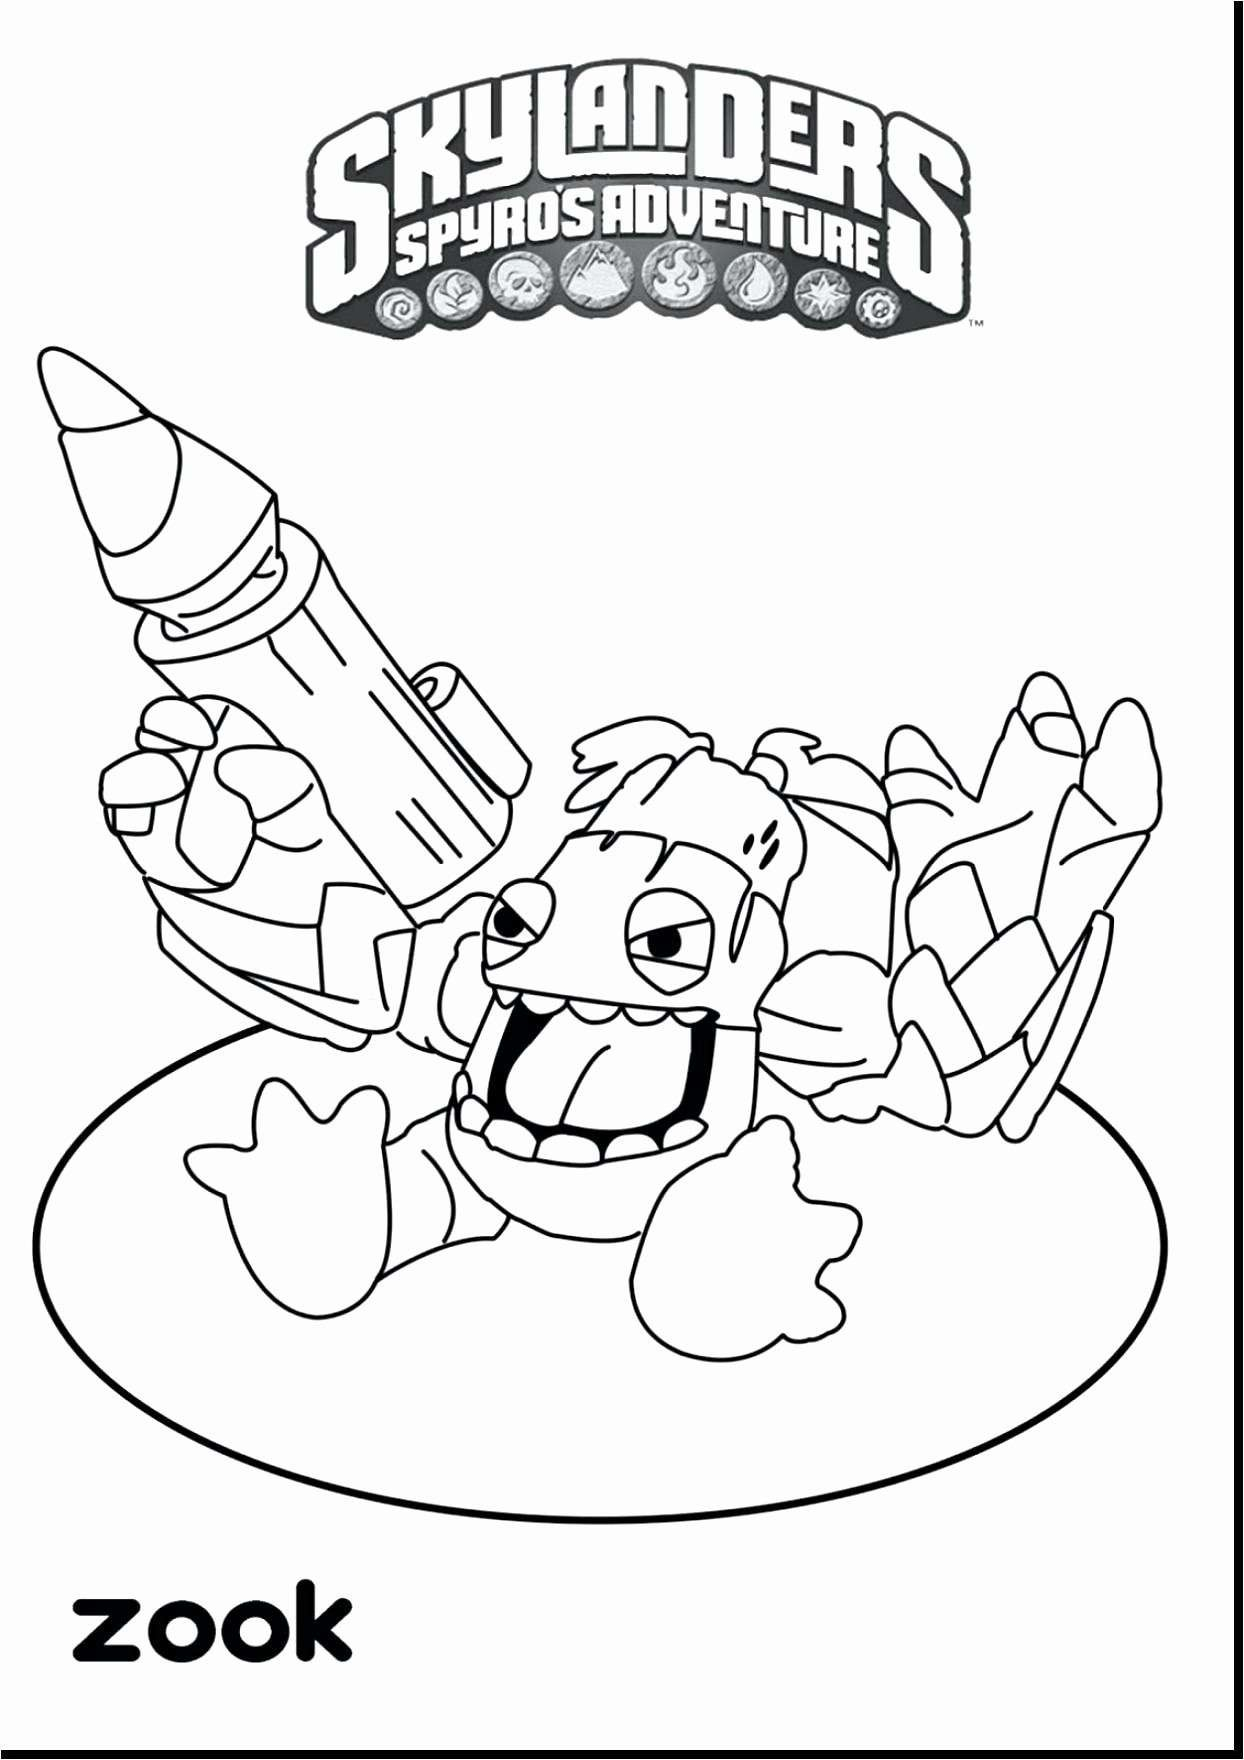 pikachu coloring pages Collection-Cool Coloring Page Inspirational Witch Coloring Pages New Crayola Pages 0d Coloring Page Printable 10-g